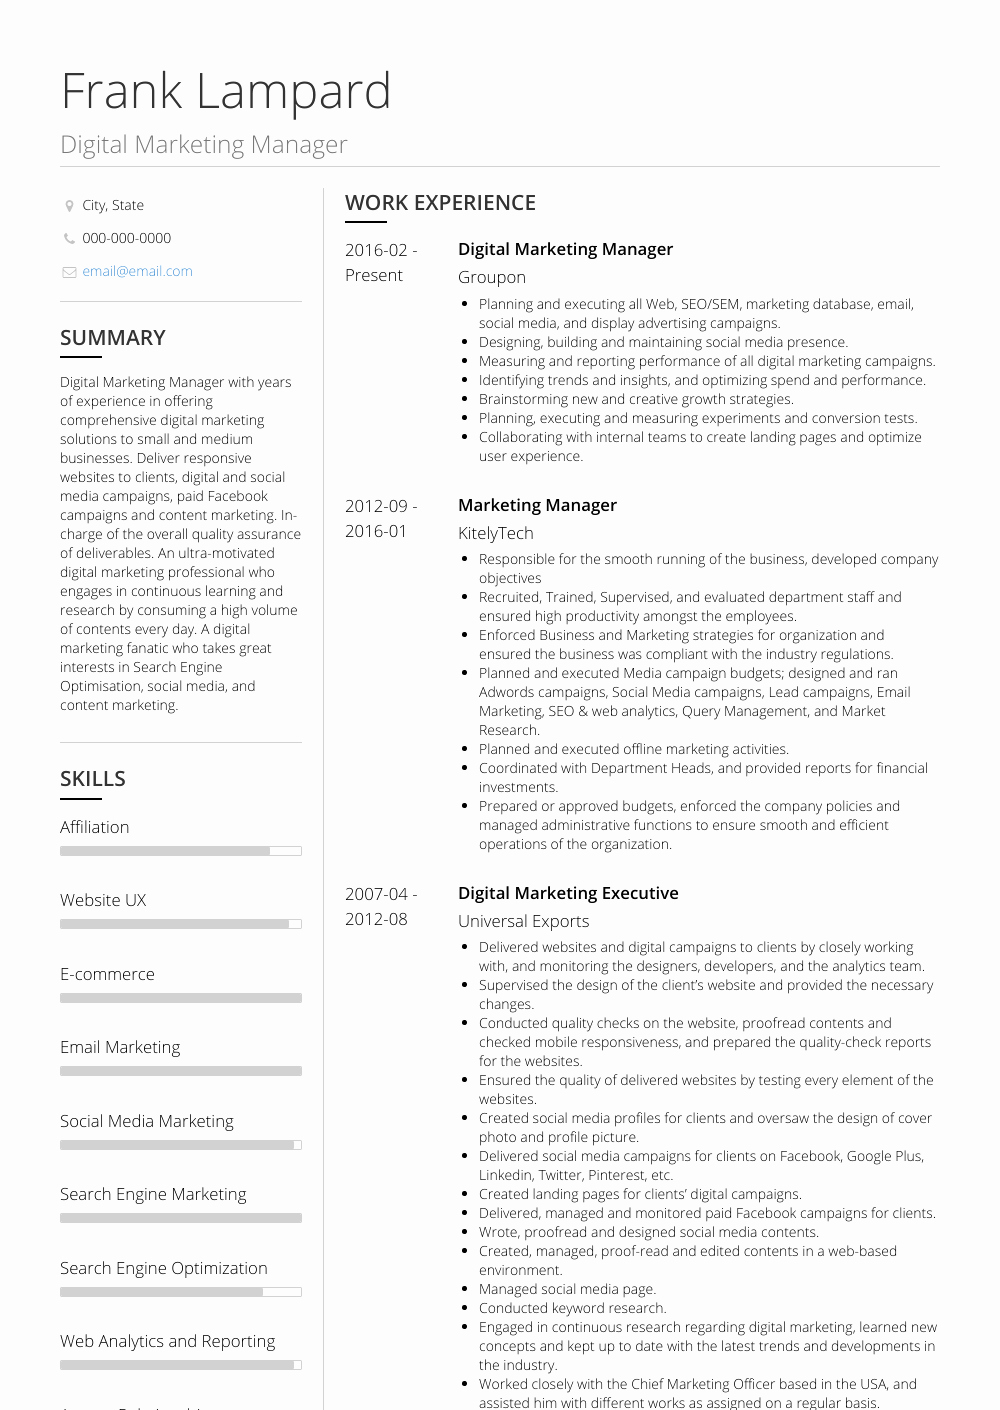 Digital Marketing Resume Sample Luxury Digital Marketing Manager Resume Samples & Templates